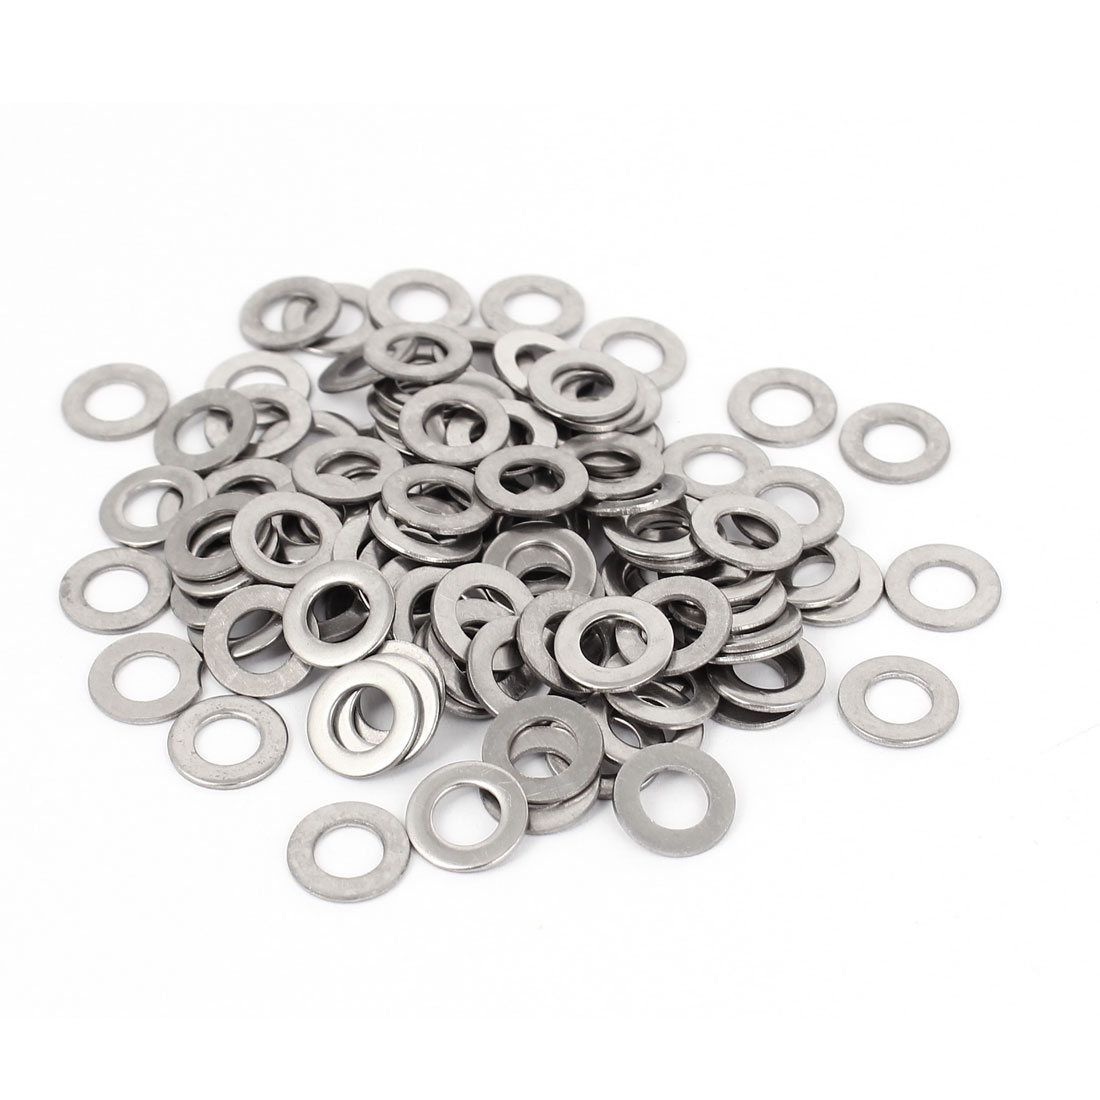 100Pcs M6x12mmx1mm Stainless Steel Metric Round Flat Washer for Bolt Screw